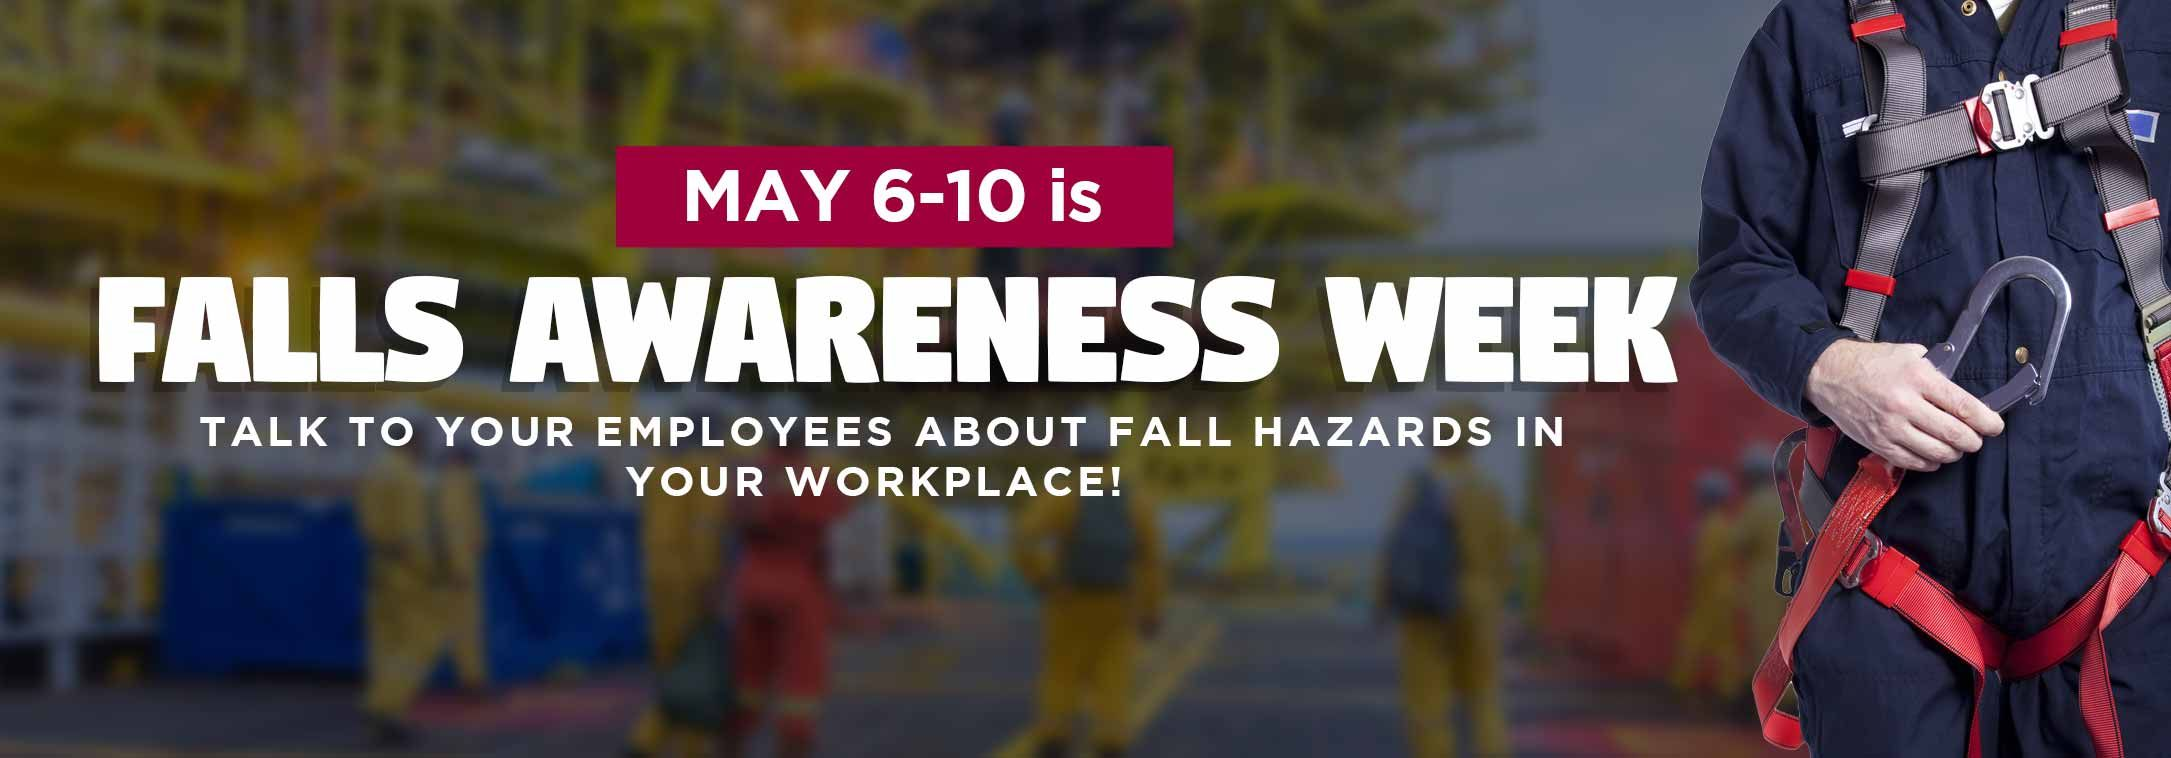 May 610 is Falls Awareness Week Workplace training